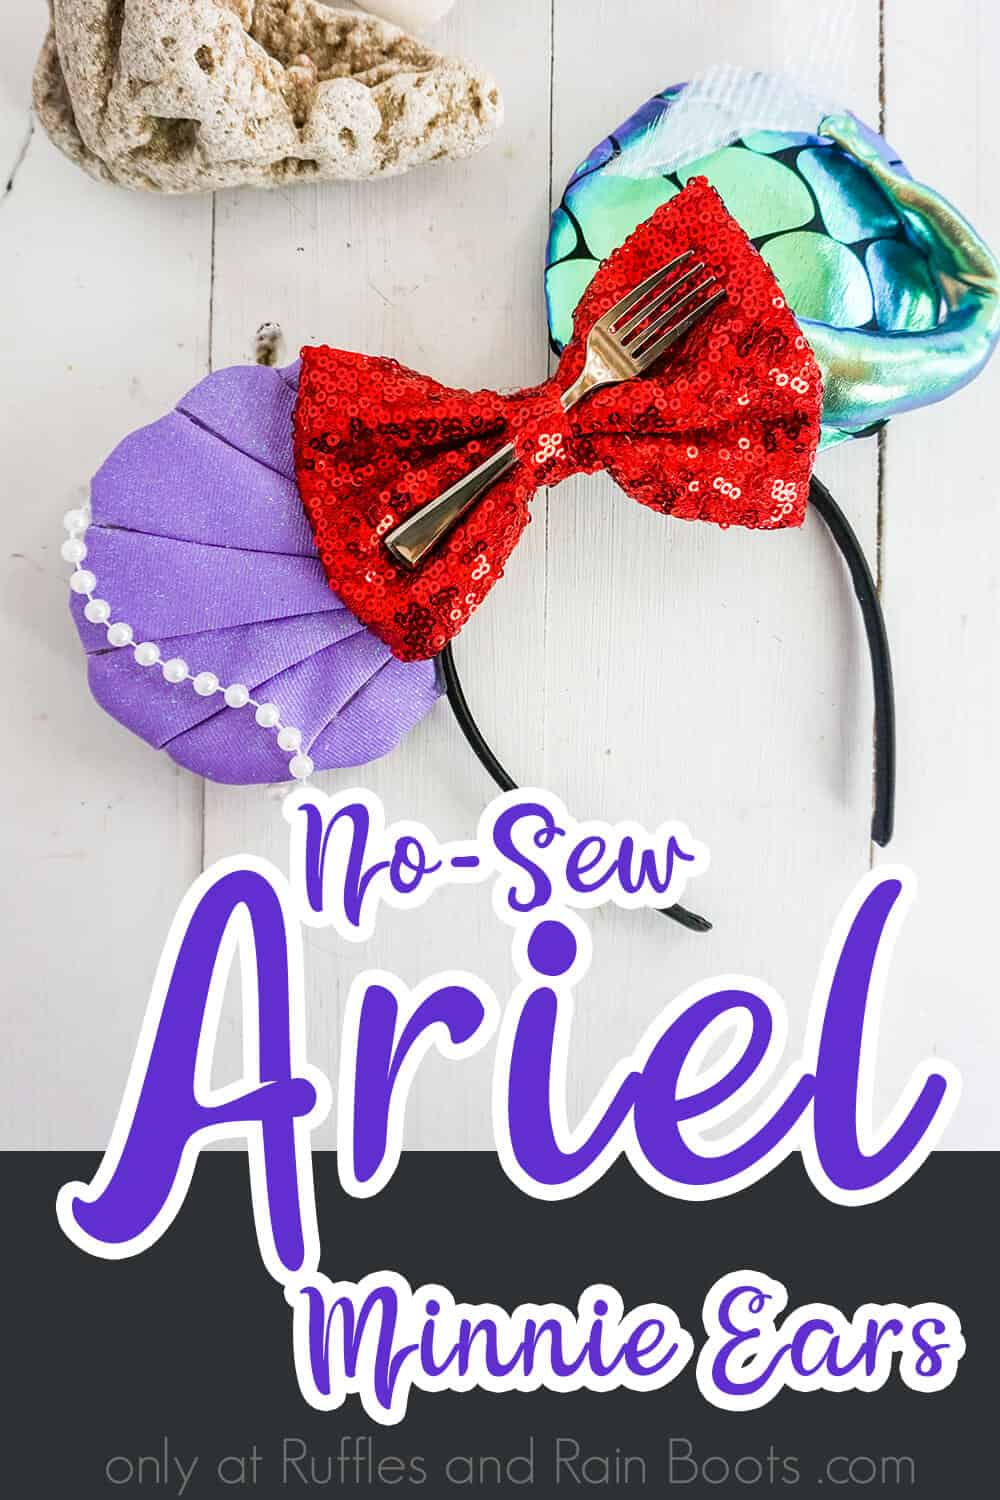 disney princess mickey ears for disney for the little mermaid on a white wood background with a piece of coral with text which reads no-sew ariel minnie ears